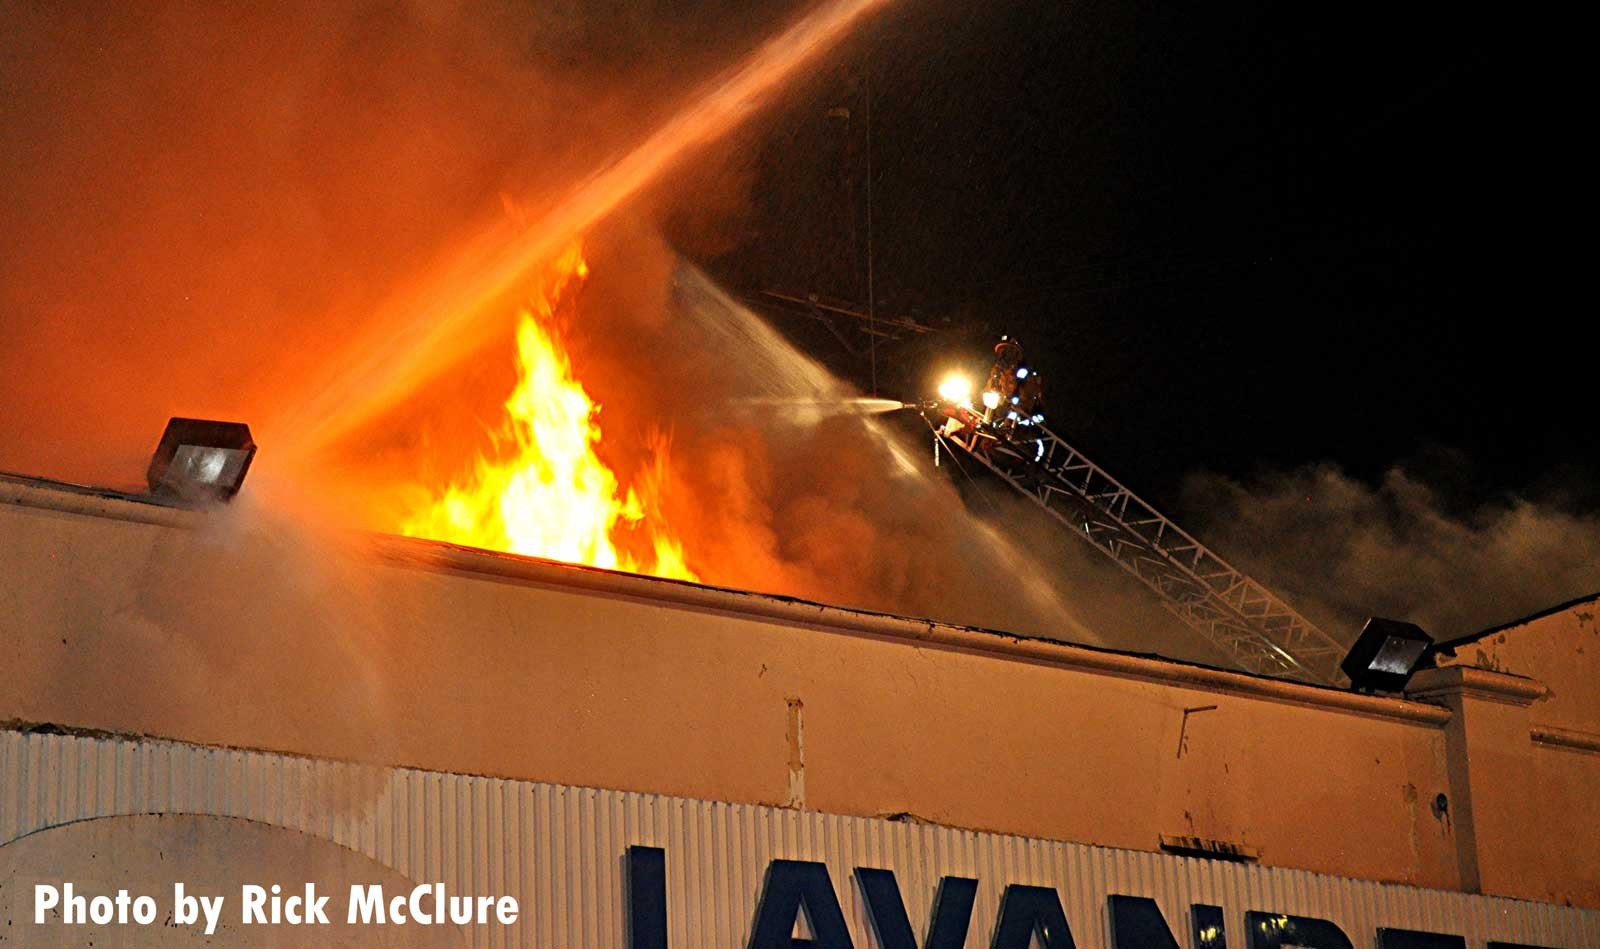 Flames shoot from the building